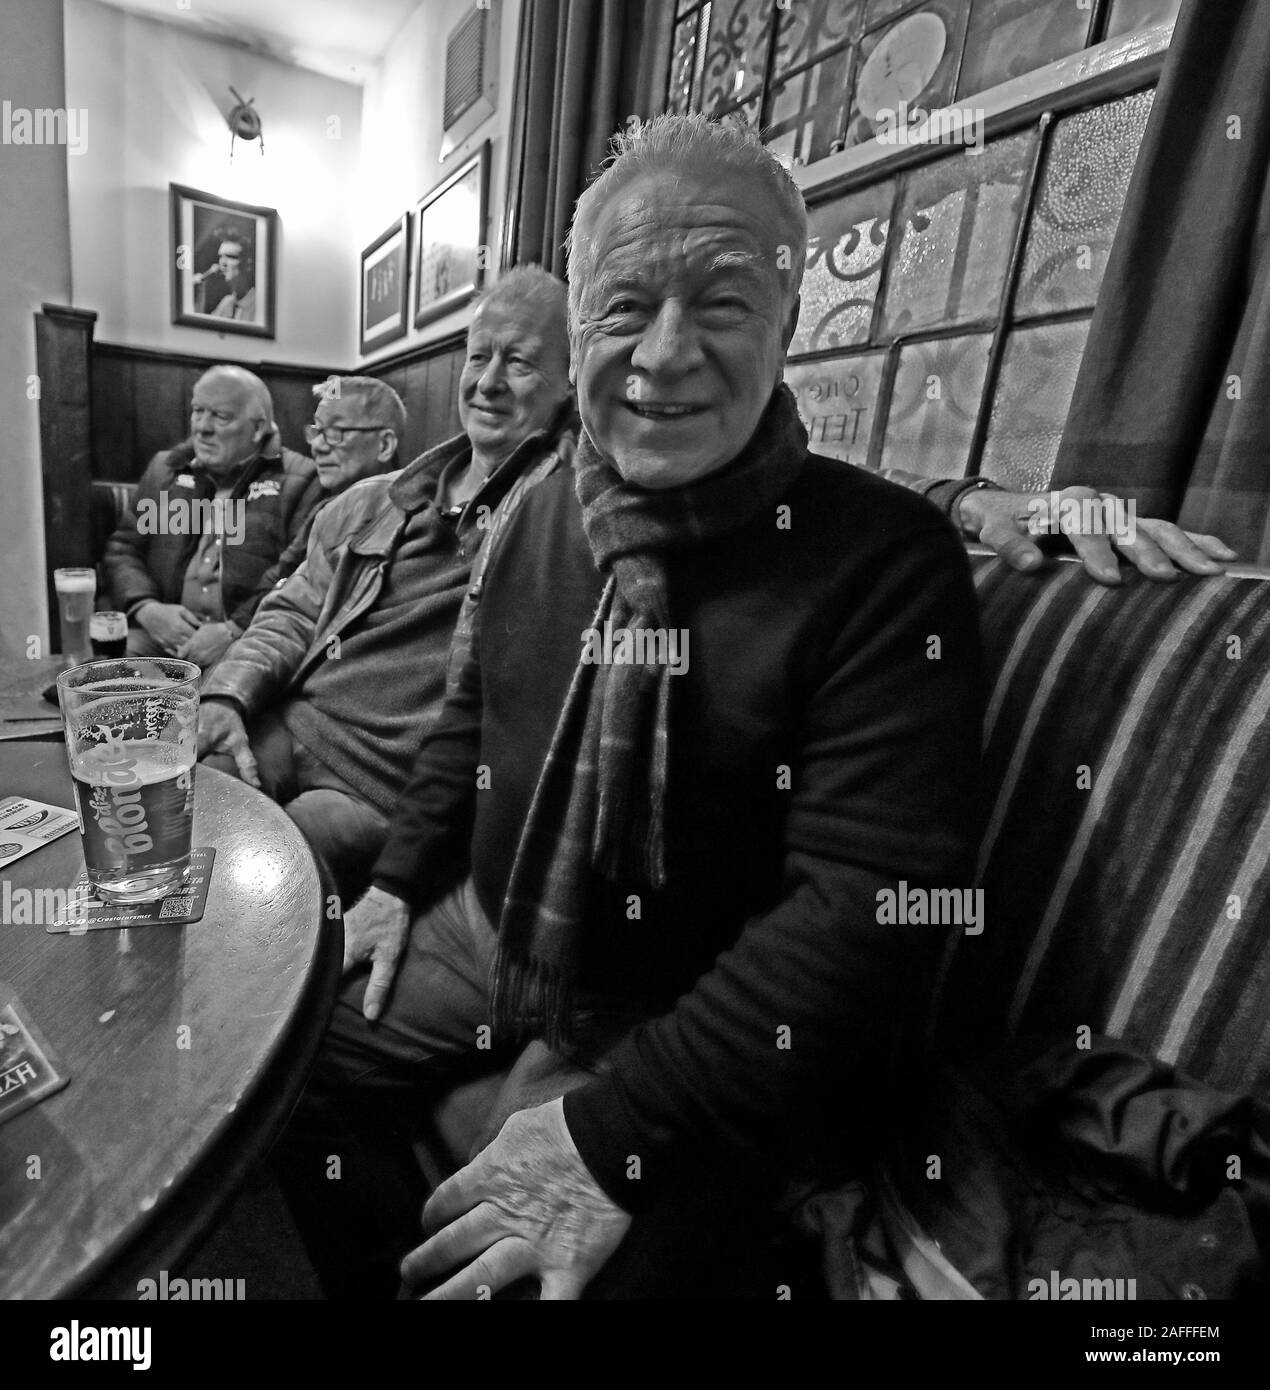 @HotpixUK,HotpixUK,GoTonySmith,@HotpixUk,ale,beer,Tavern,Manchester,customers,men,man,blokes,inside,interior,The Circus,city centre,smallest public house,smallest,1790,Grade II building,Grade II,building,Tetley,Tetleys,historic,oldest pubs in Manchester,oldest pub in Manchester,drinkers,drinker,men in a pub,man in a pub,BW,Black and White,Monochrome,bitter,lager,pints,on a table,round